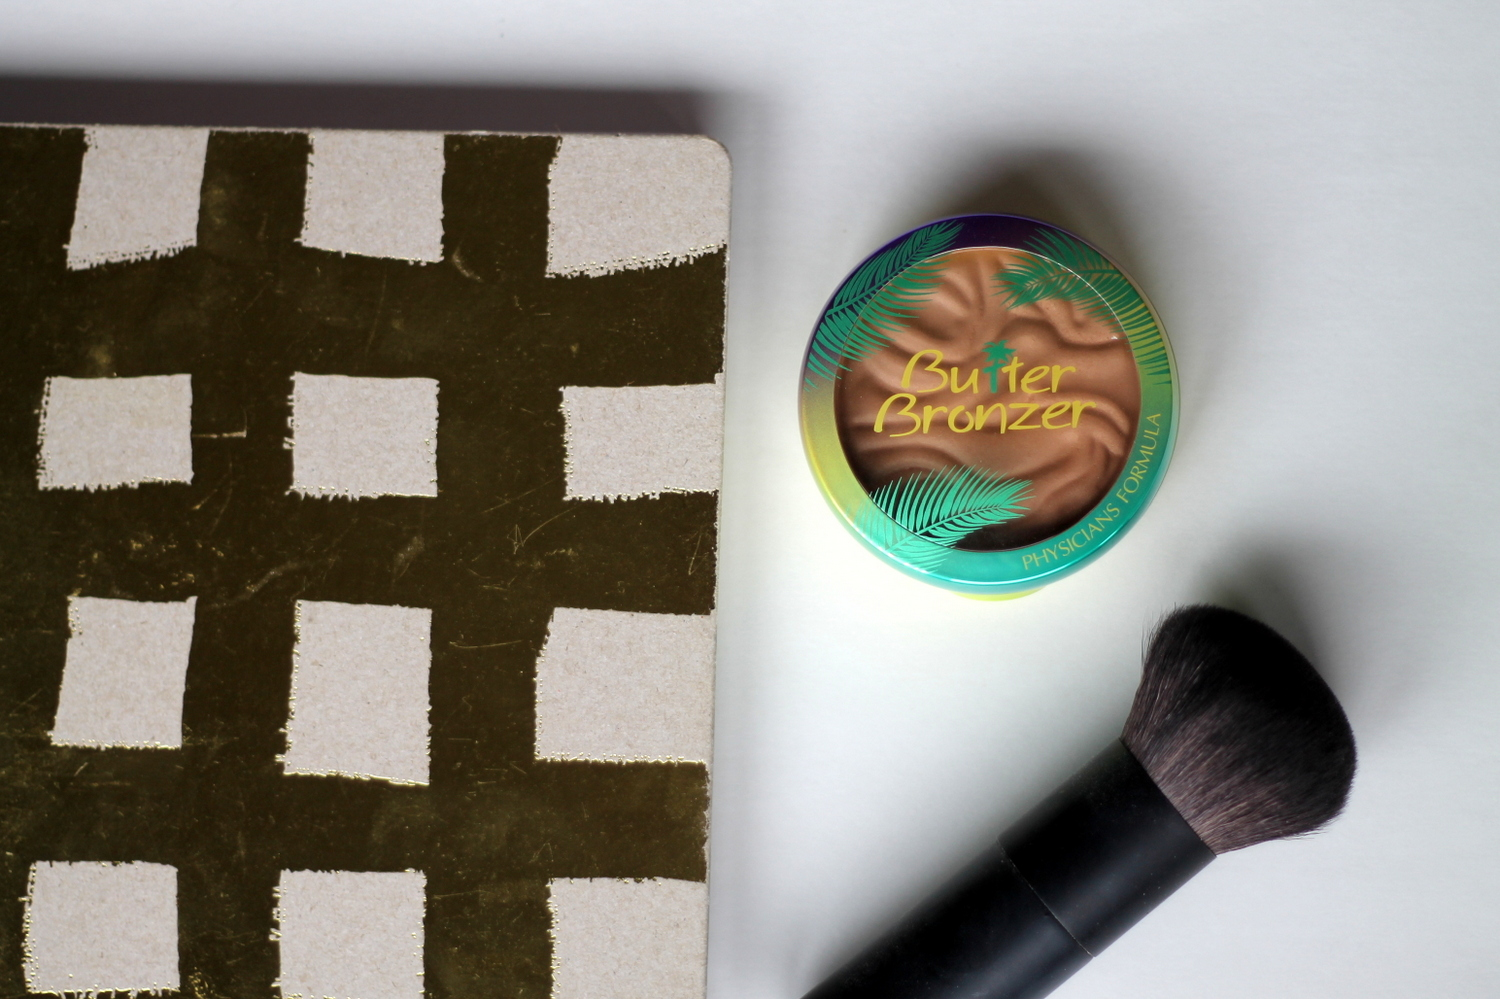 The New Summer Bronzer | Re-Mix-Her